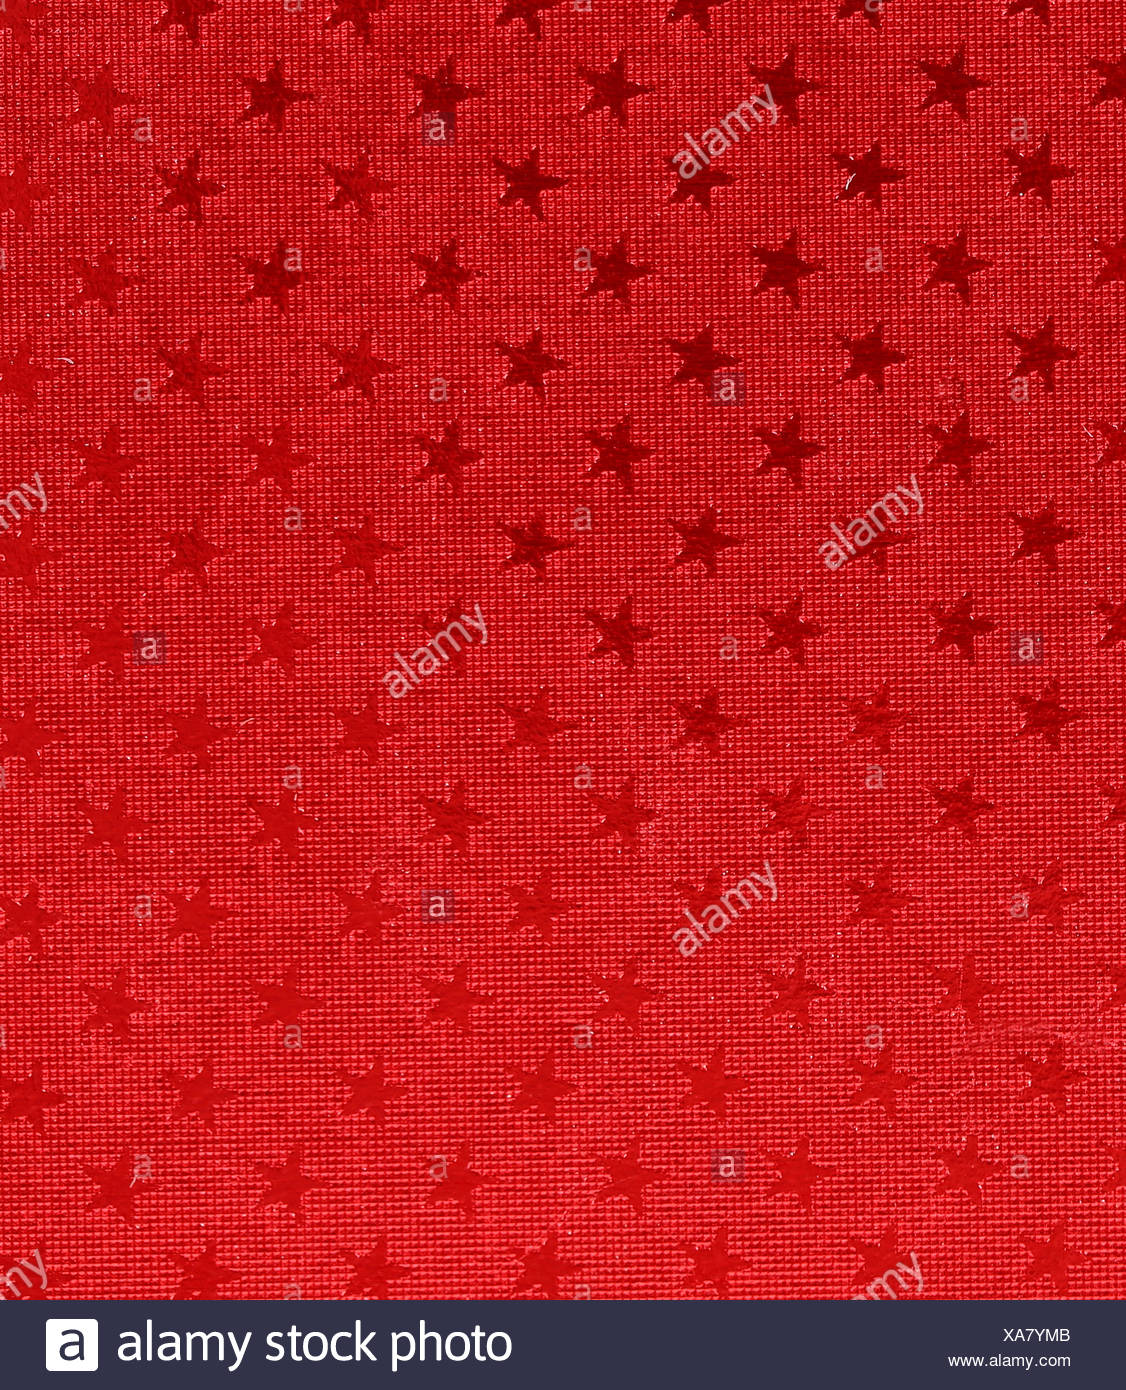 Asterisks on red background. - Stock Image